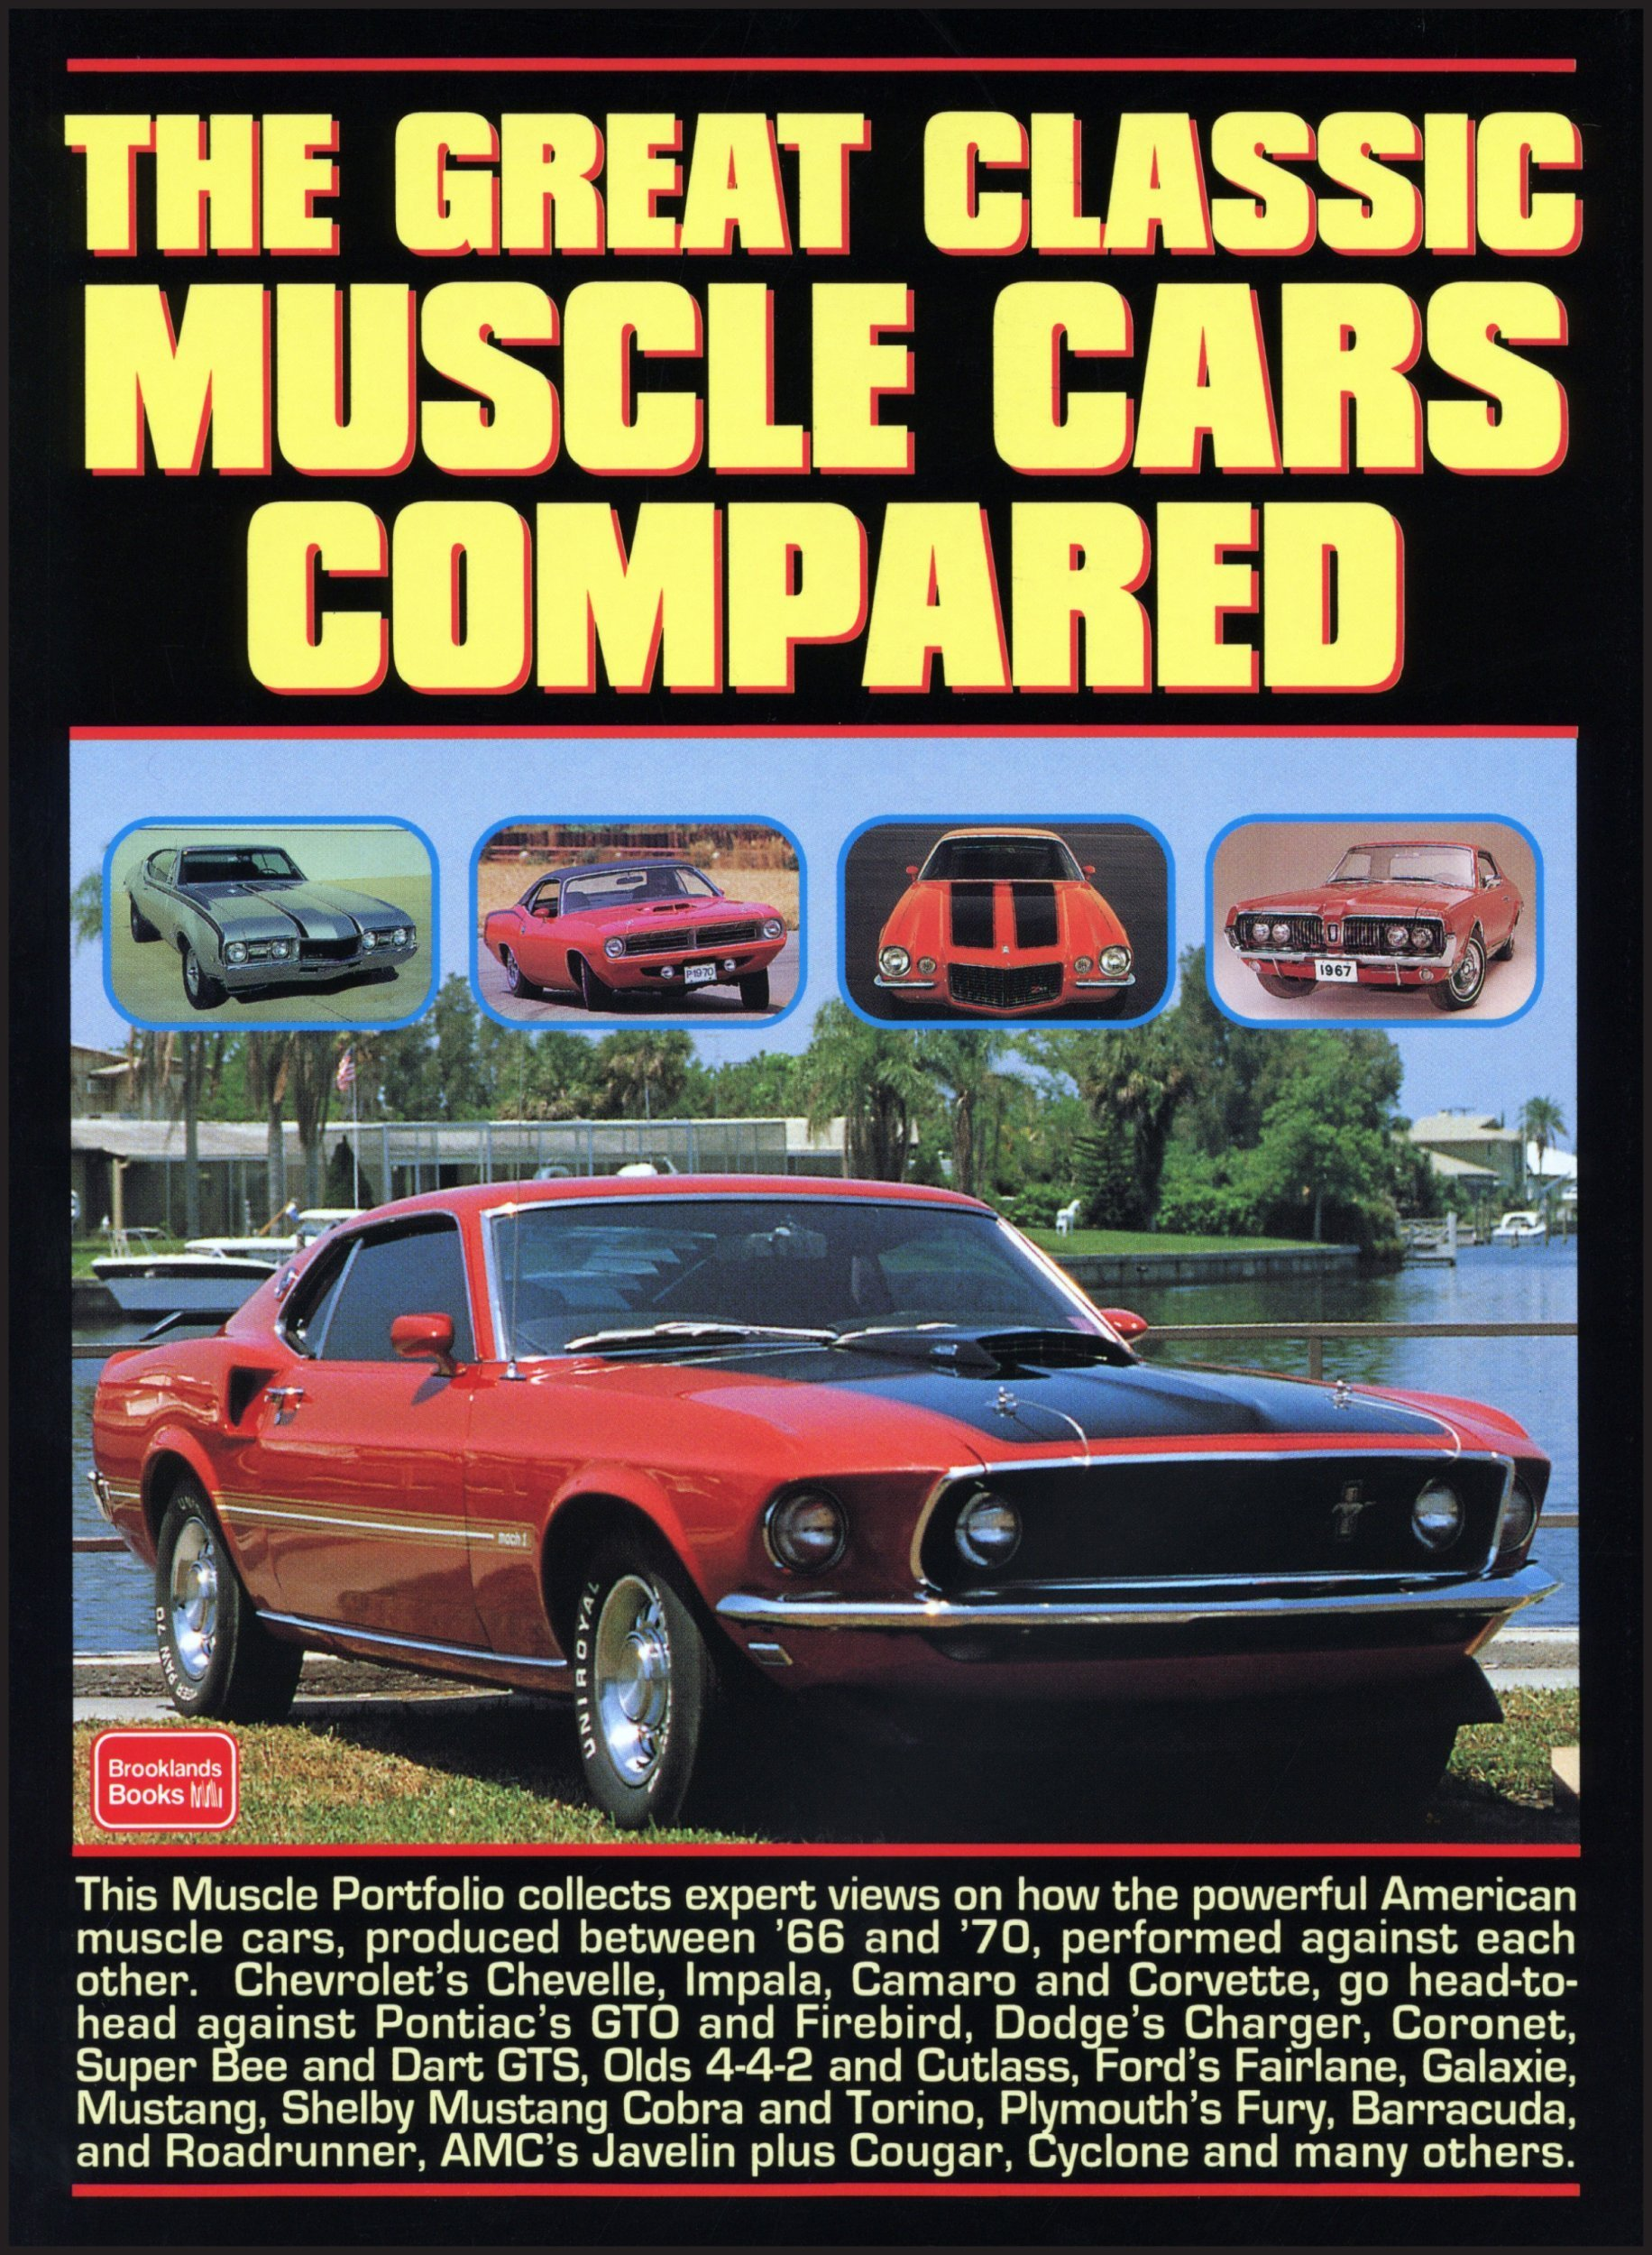 The Great Classic Muscle Cars Compared: R.M. Clarke: 9781855204225 ...